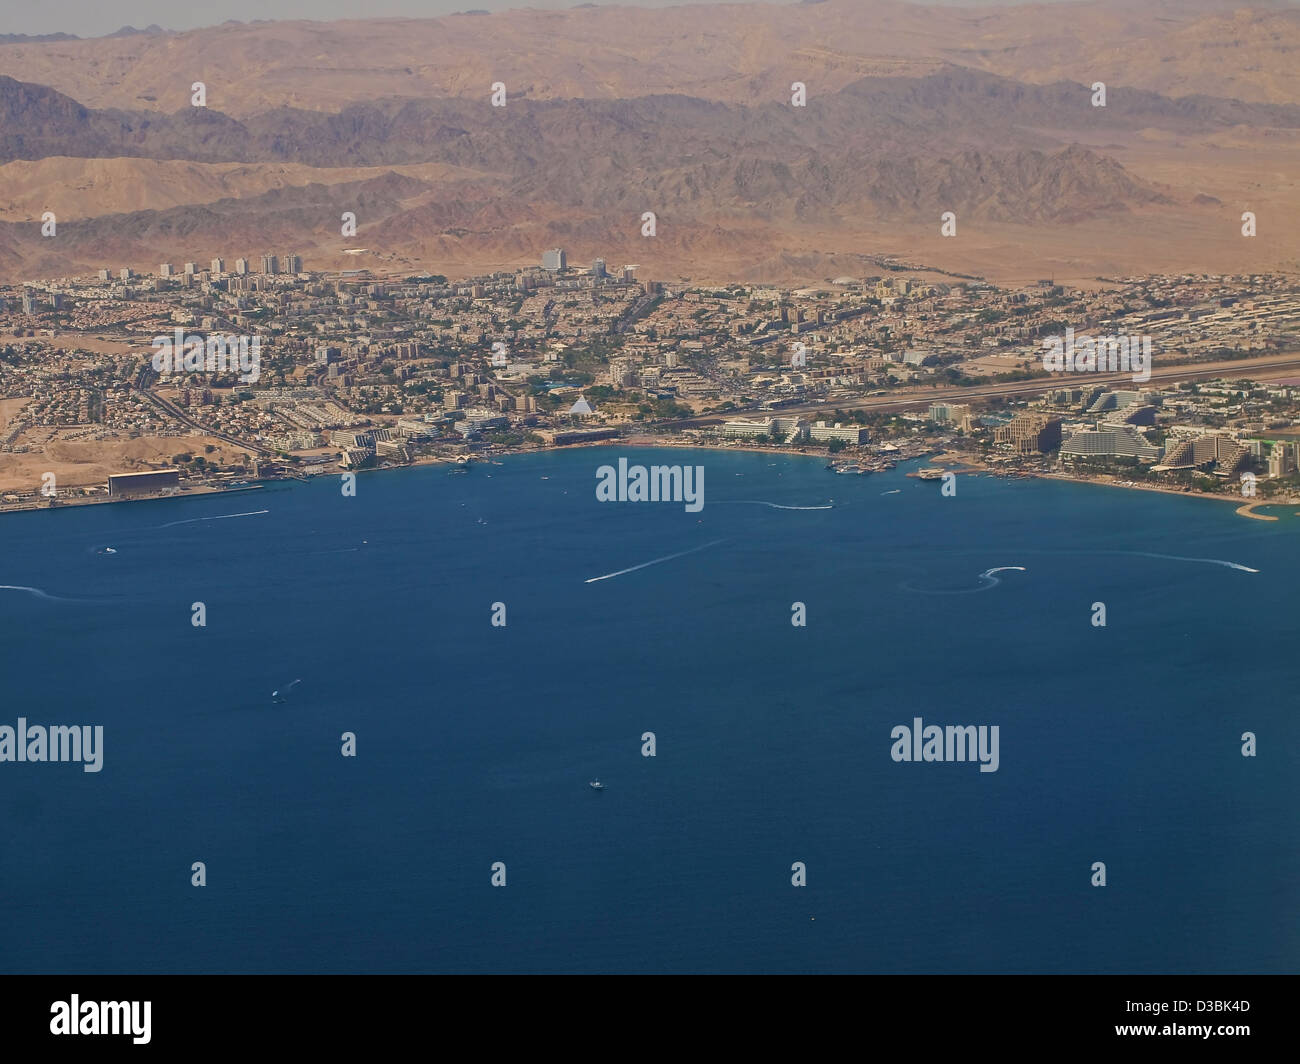 Aerial View of the city of Eilat - Stock Image